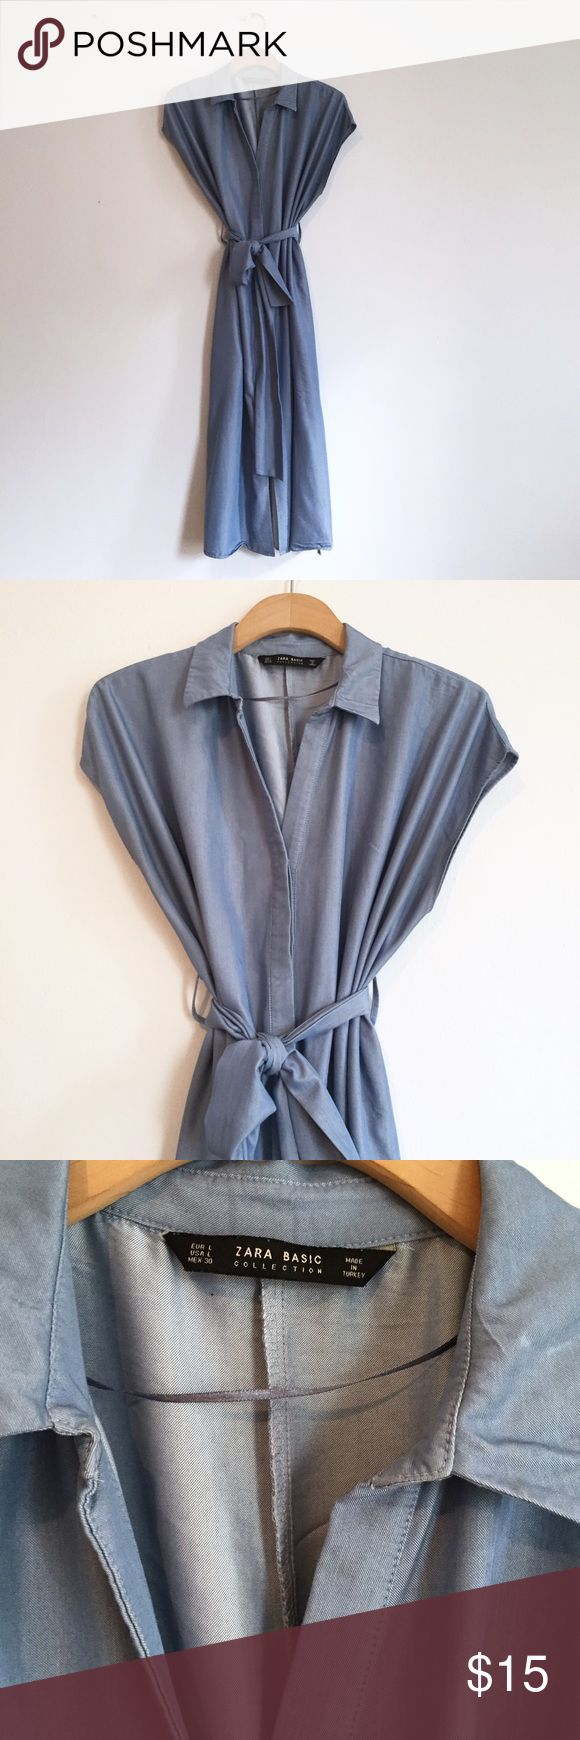 Zara Denim Midi Dress Zara Denim Midi Dress  -Size L -Attached belt and shell buttons -In good condition with light wear and light mark.  See photos.  ⚡️No Trades⚡ ➕Offers Accepted➕ ✈️Fast Shipping✈️ Zara Dresses Midi